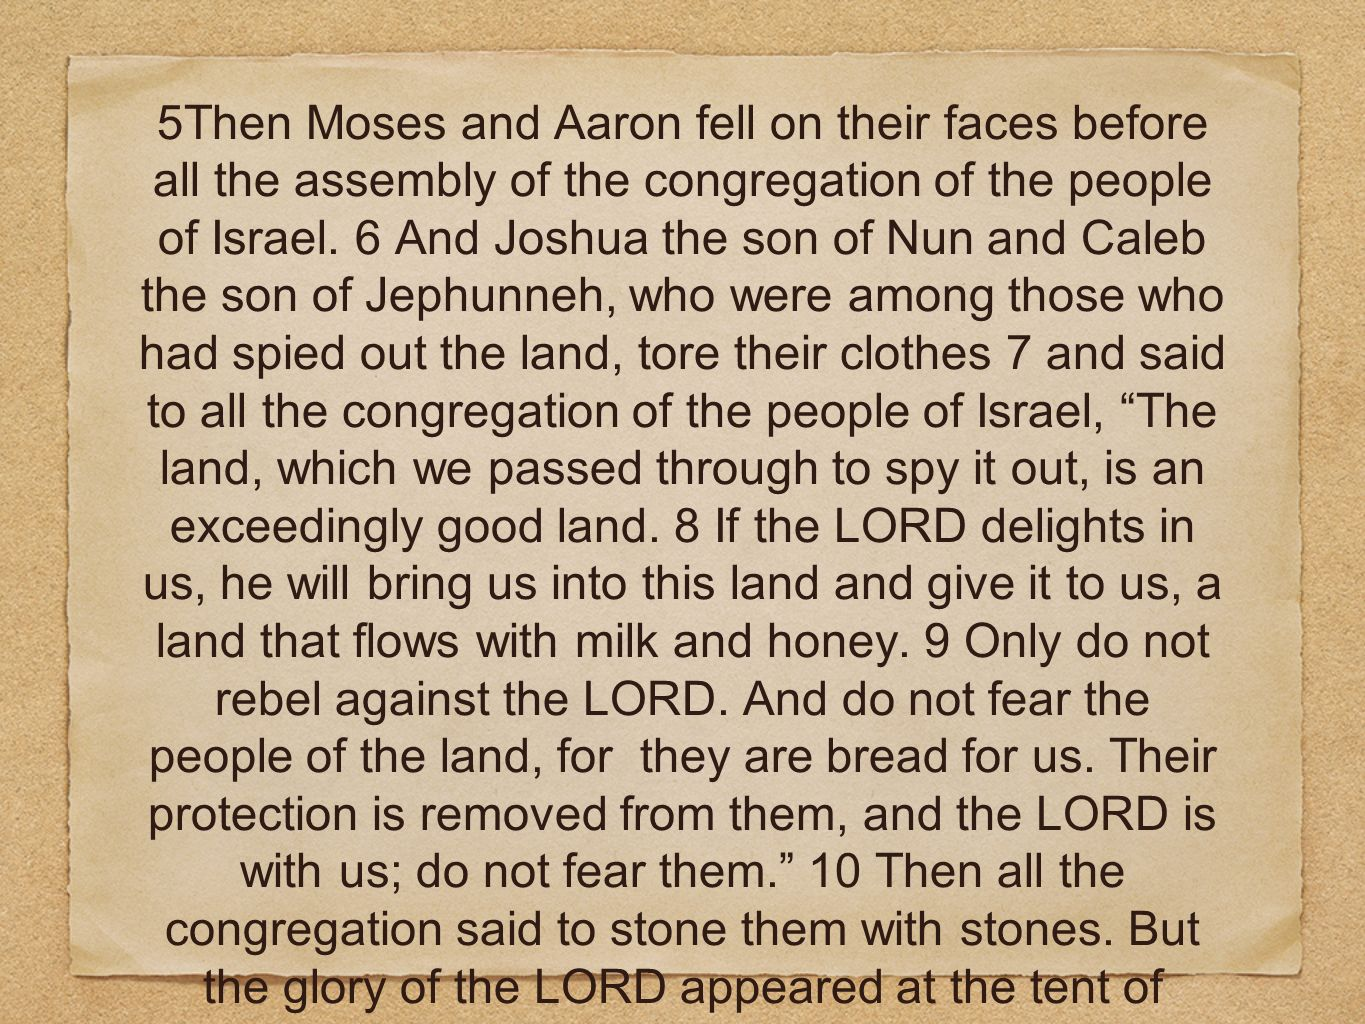 5Then Moses and Aaron fell on their faces before all the assembly of the congregation of the people of Israel. 6 And Joshua the son of Nun and Caleb t